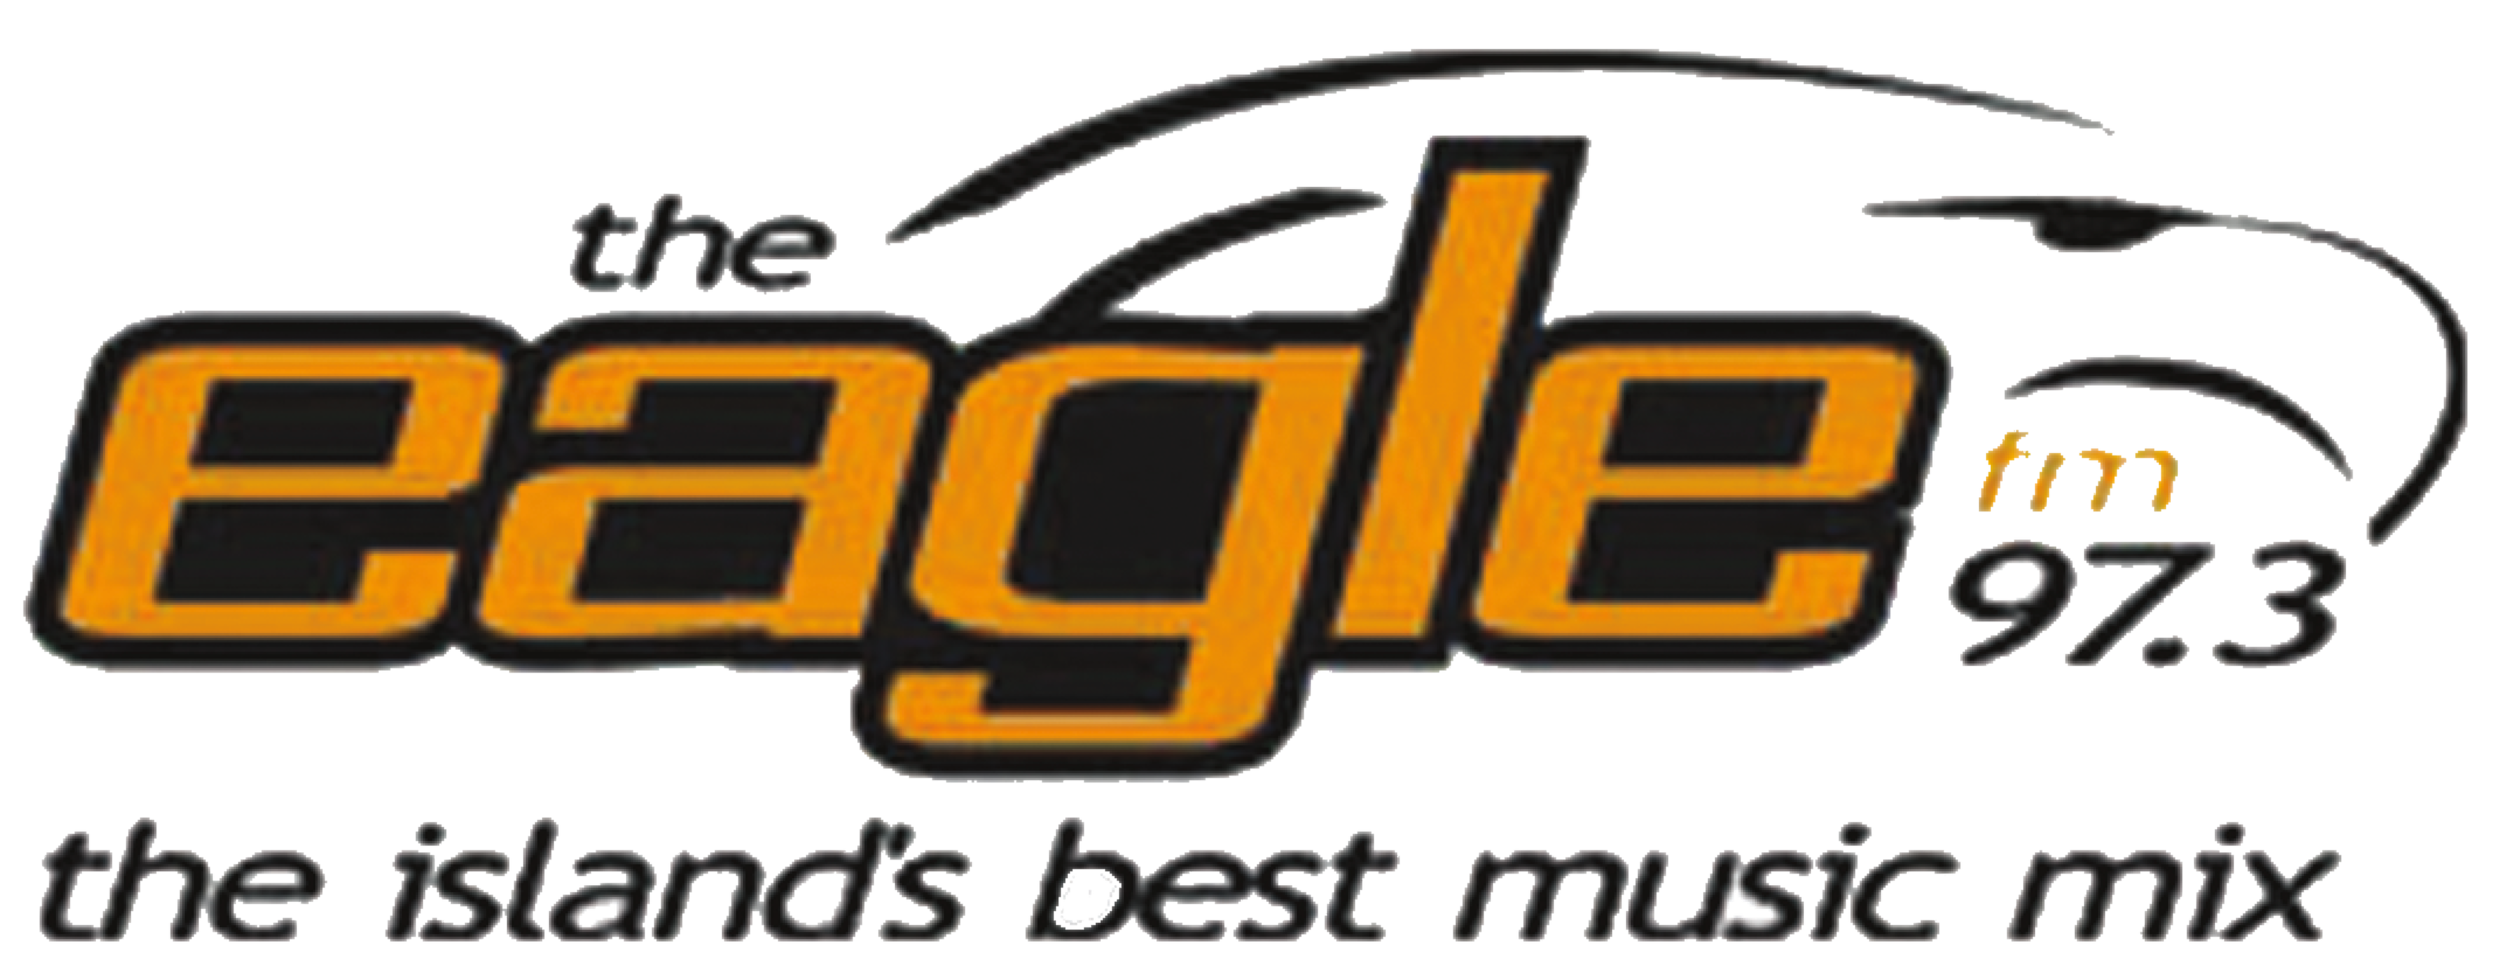 Eagle2png.png